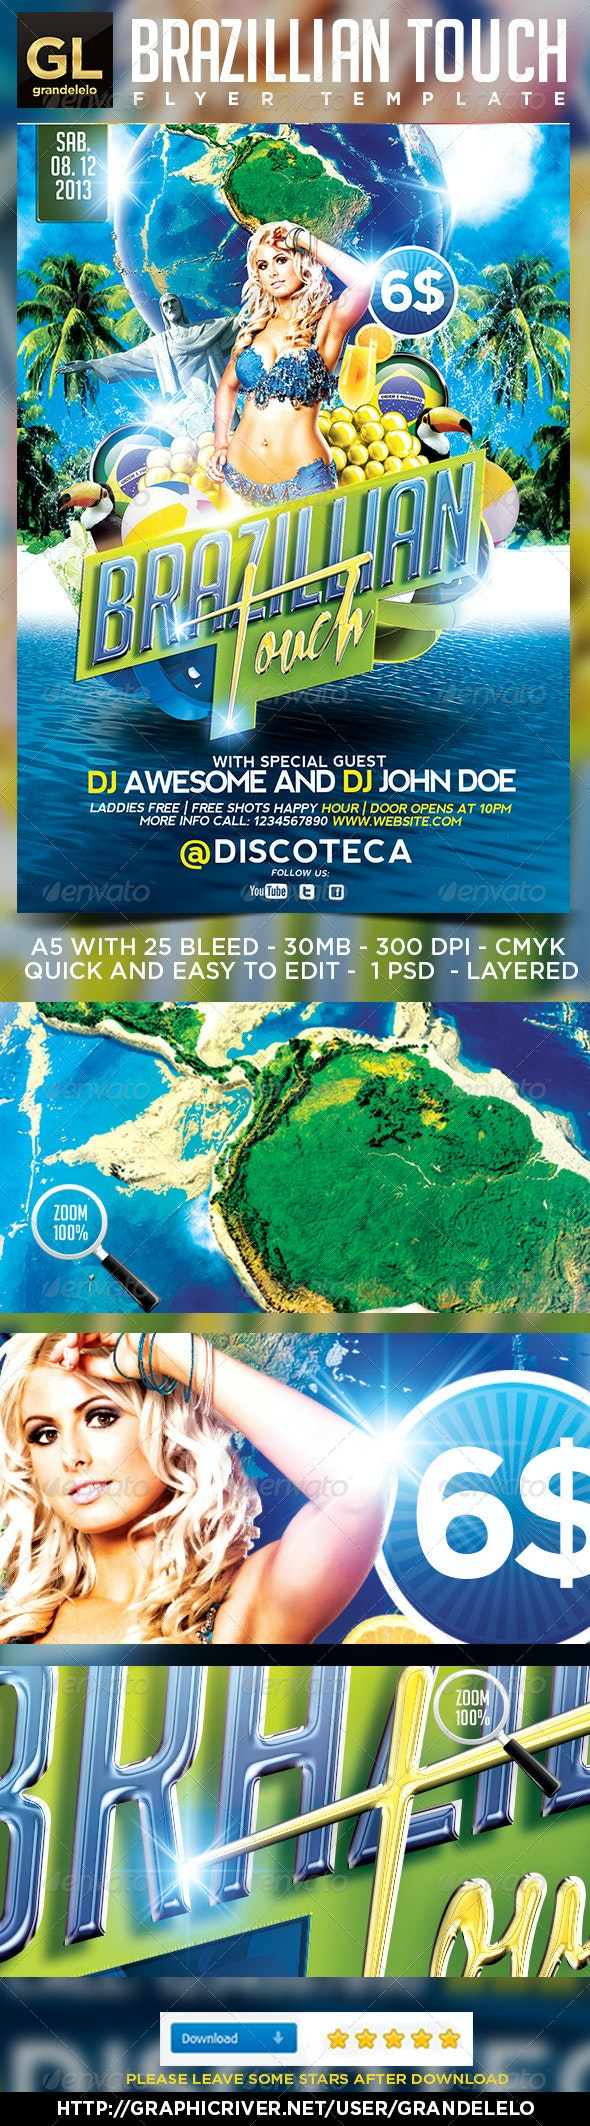 Brazilian Touch Flyer Template - Clubs & Parties Events